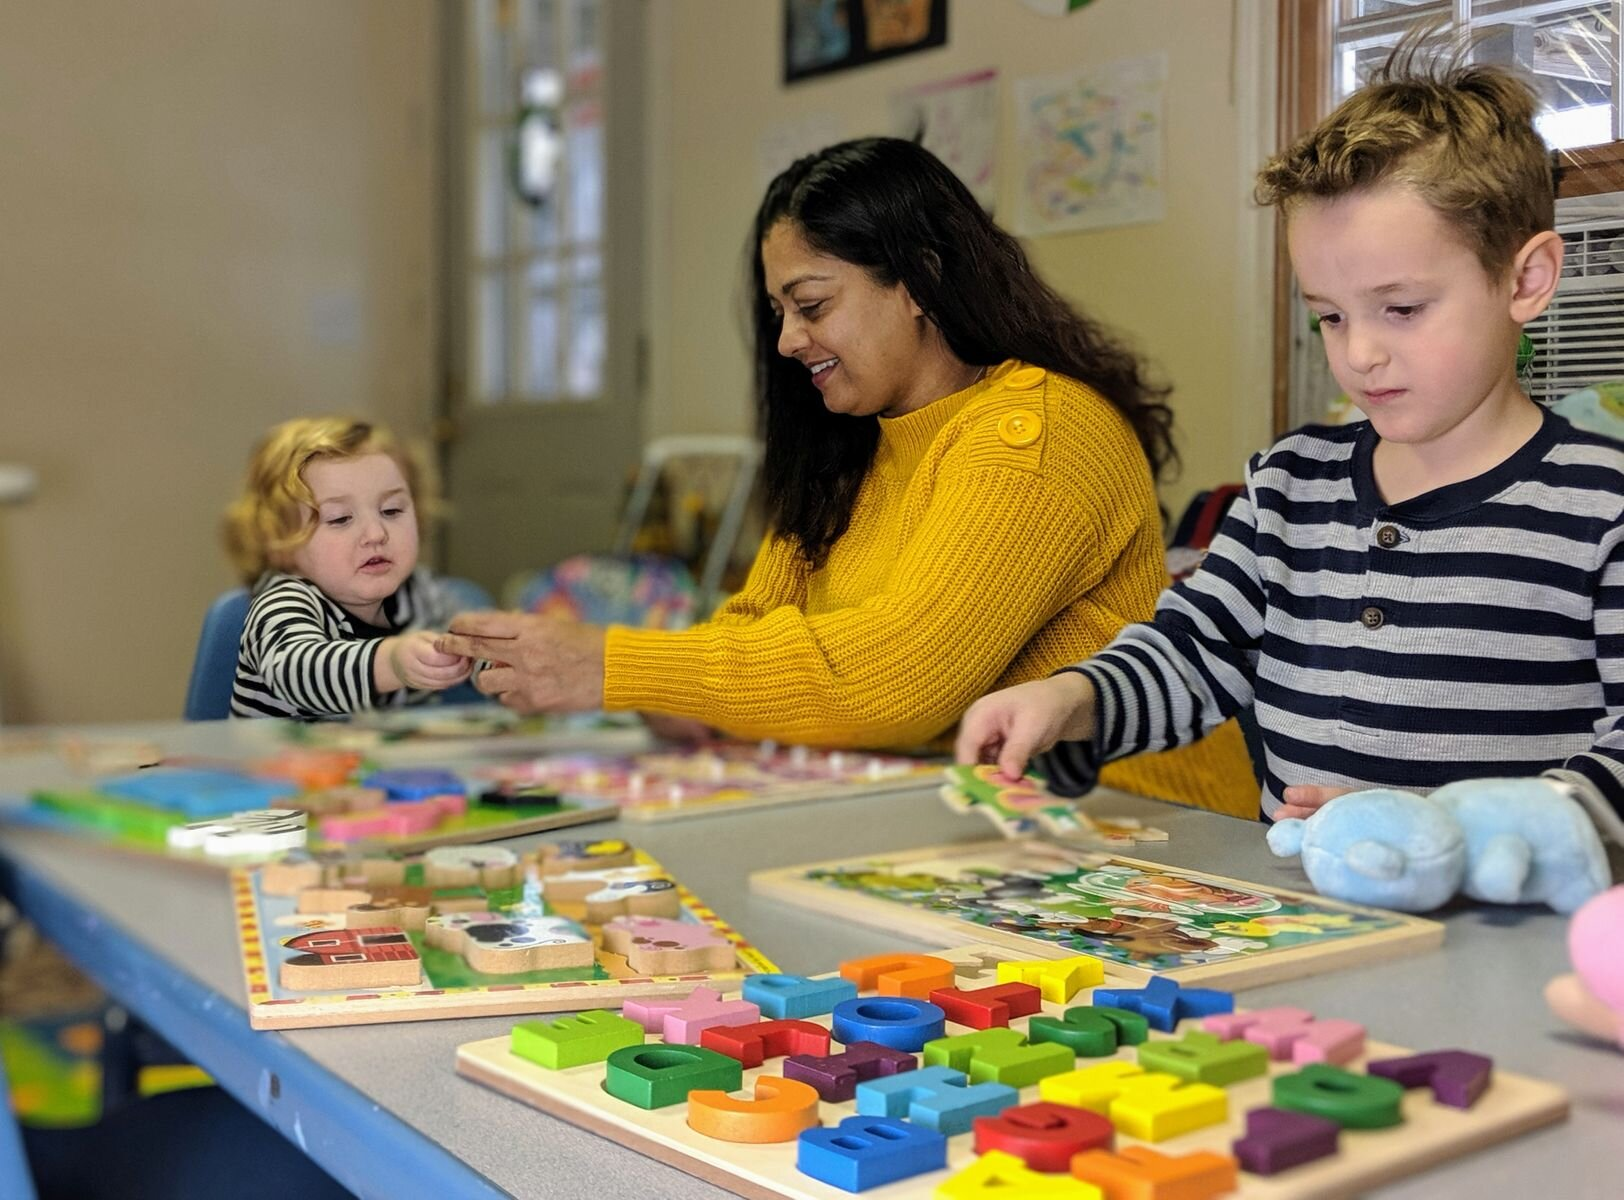 Home daycare provider with toddlers in North Grafton, MA